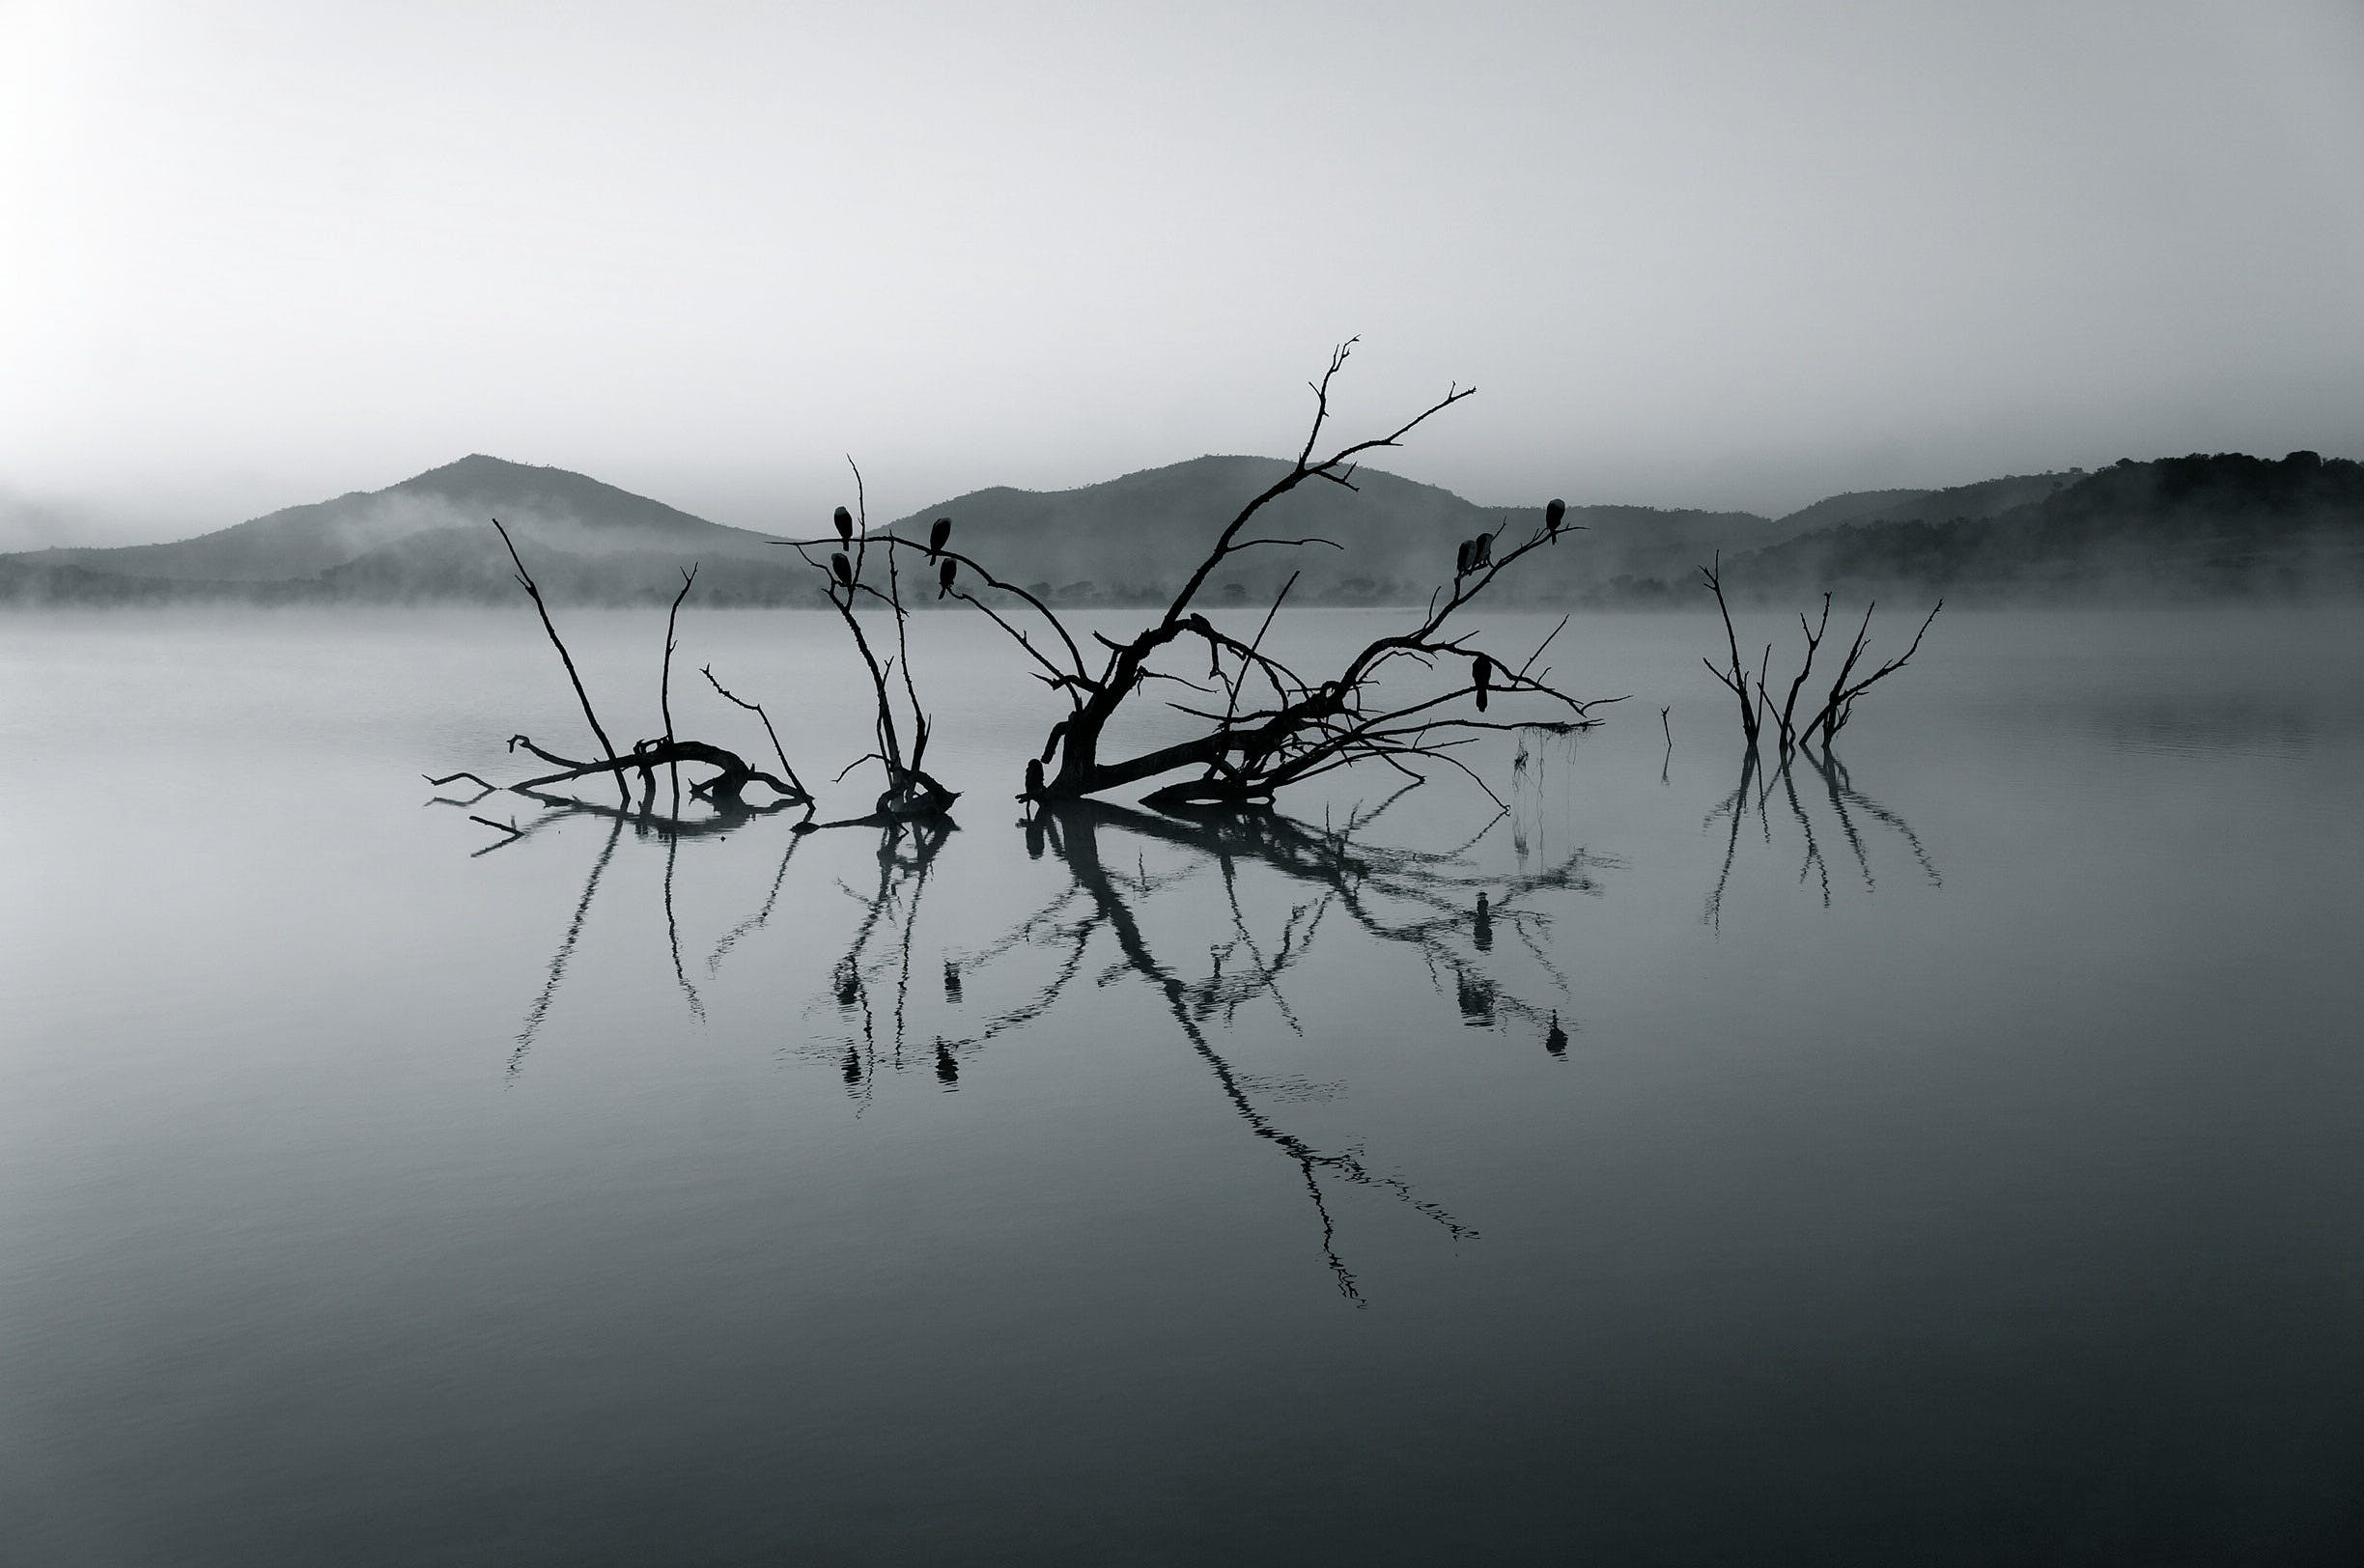 Silhouette of Tree Branch on Body of Water